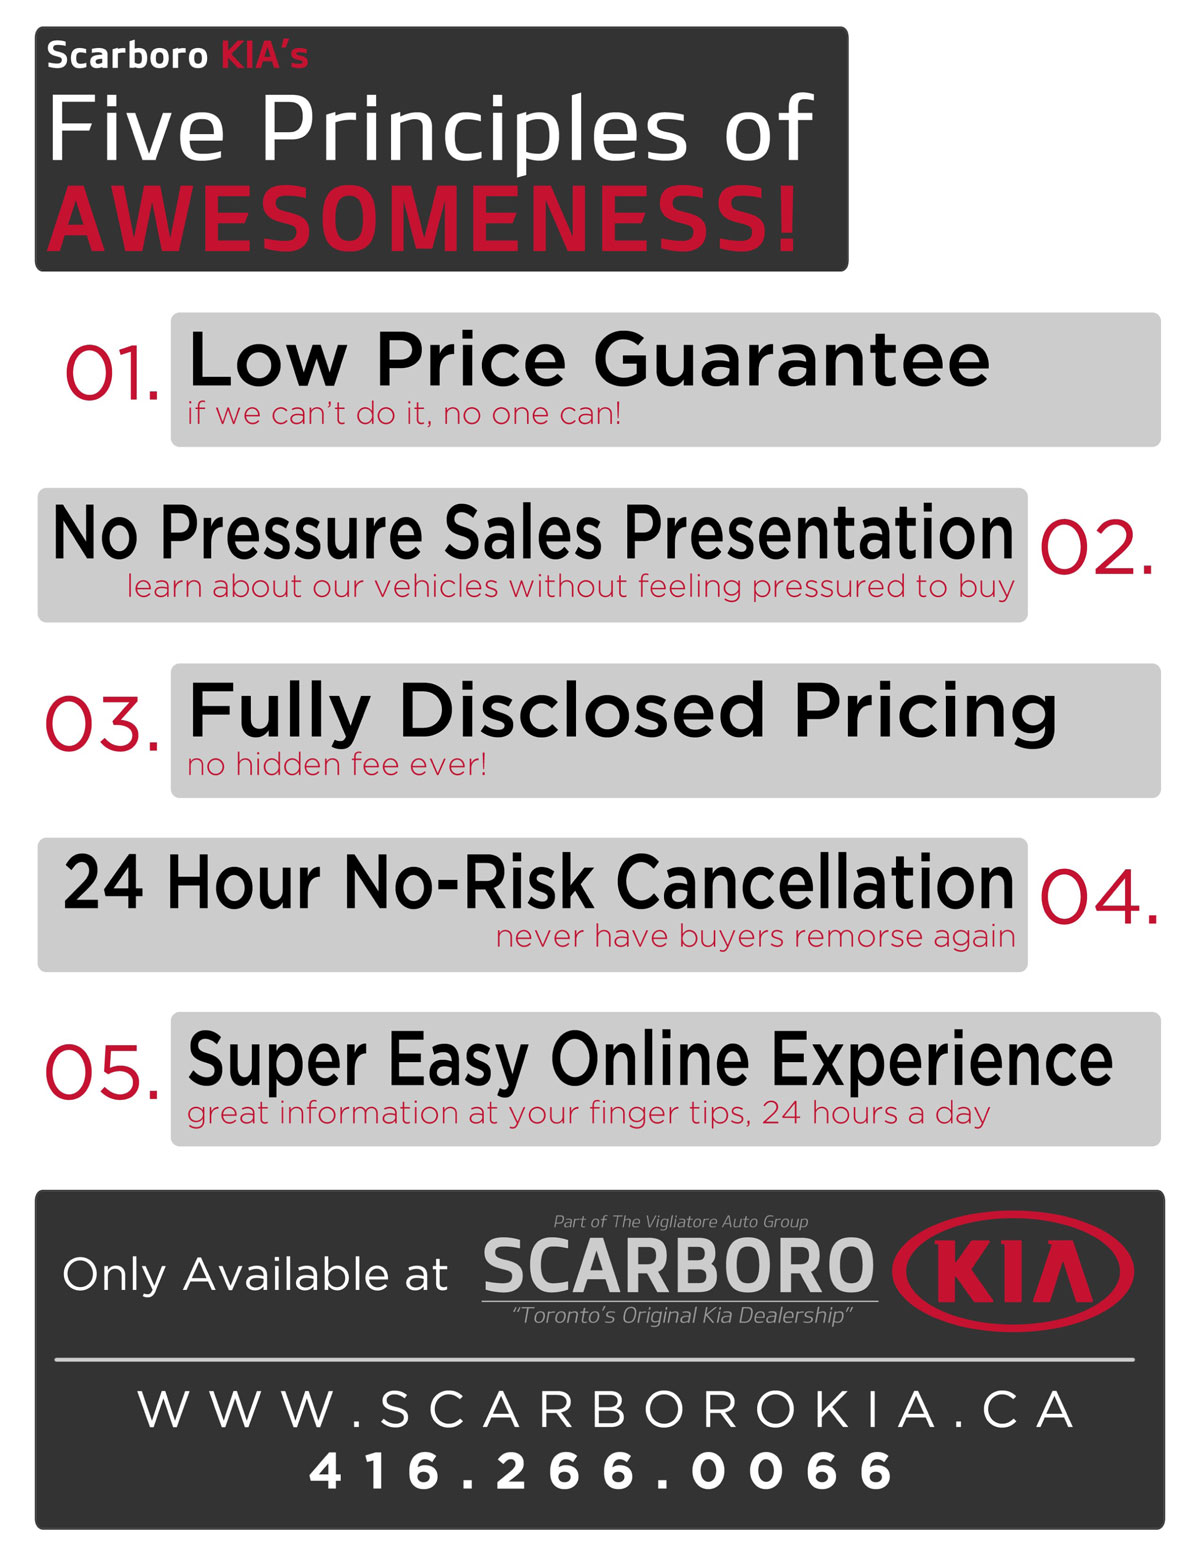 Why Choose Scarboro Kia